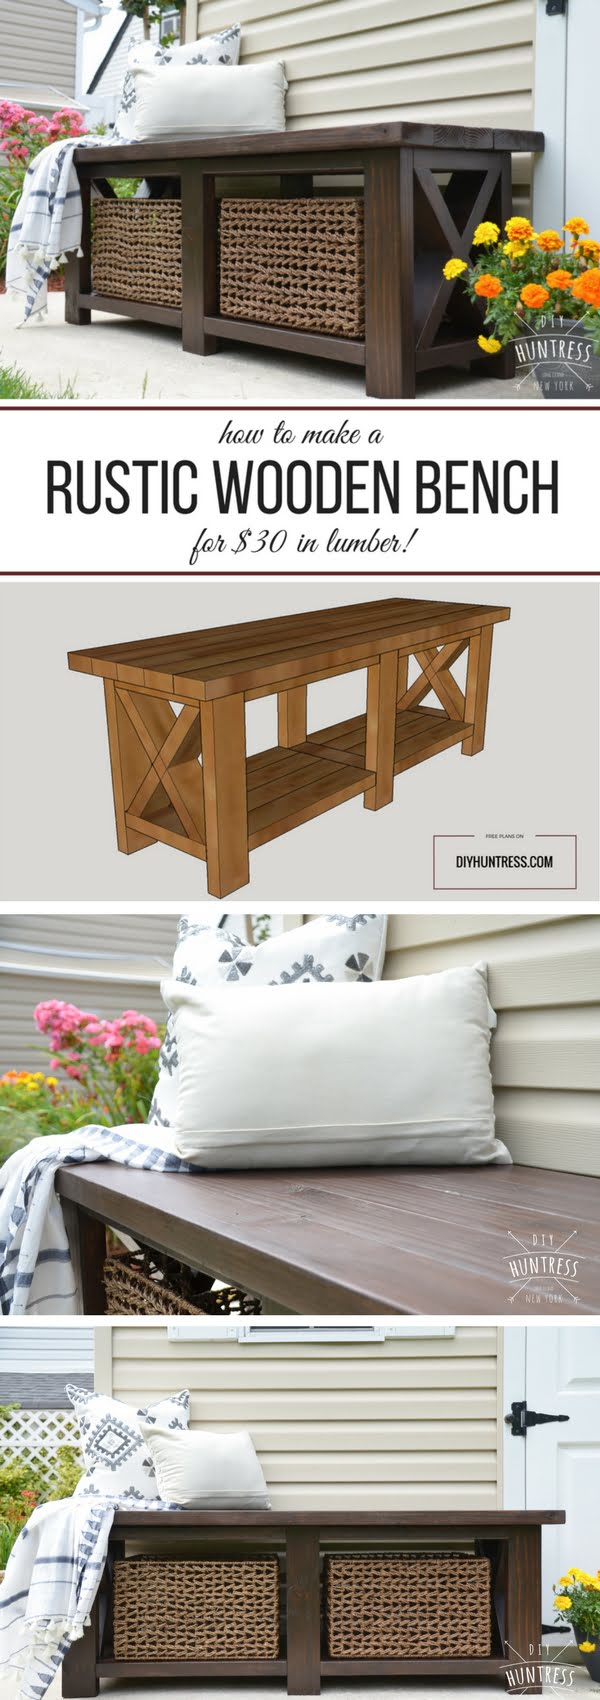 40 Easy Diy Bench Ideas For Indoors With Plans